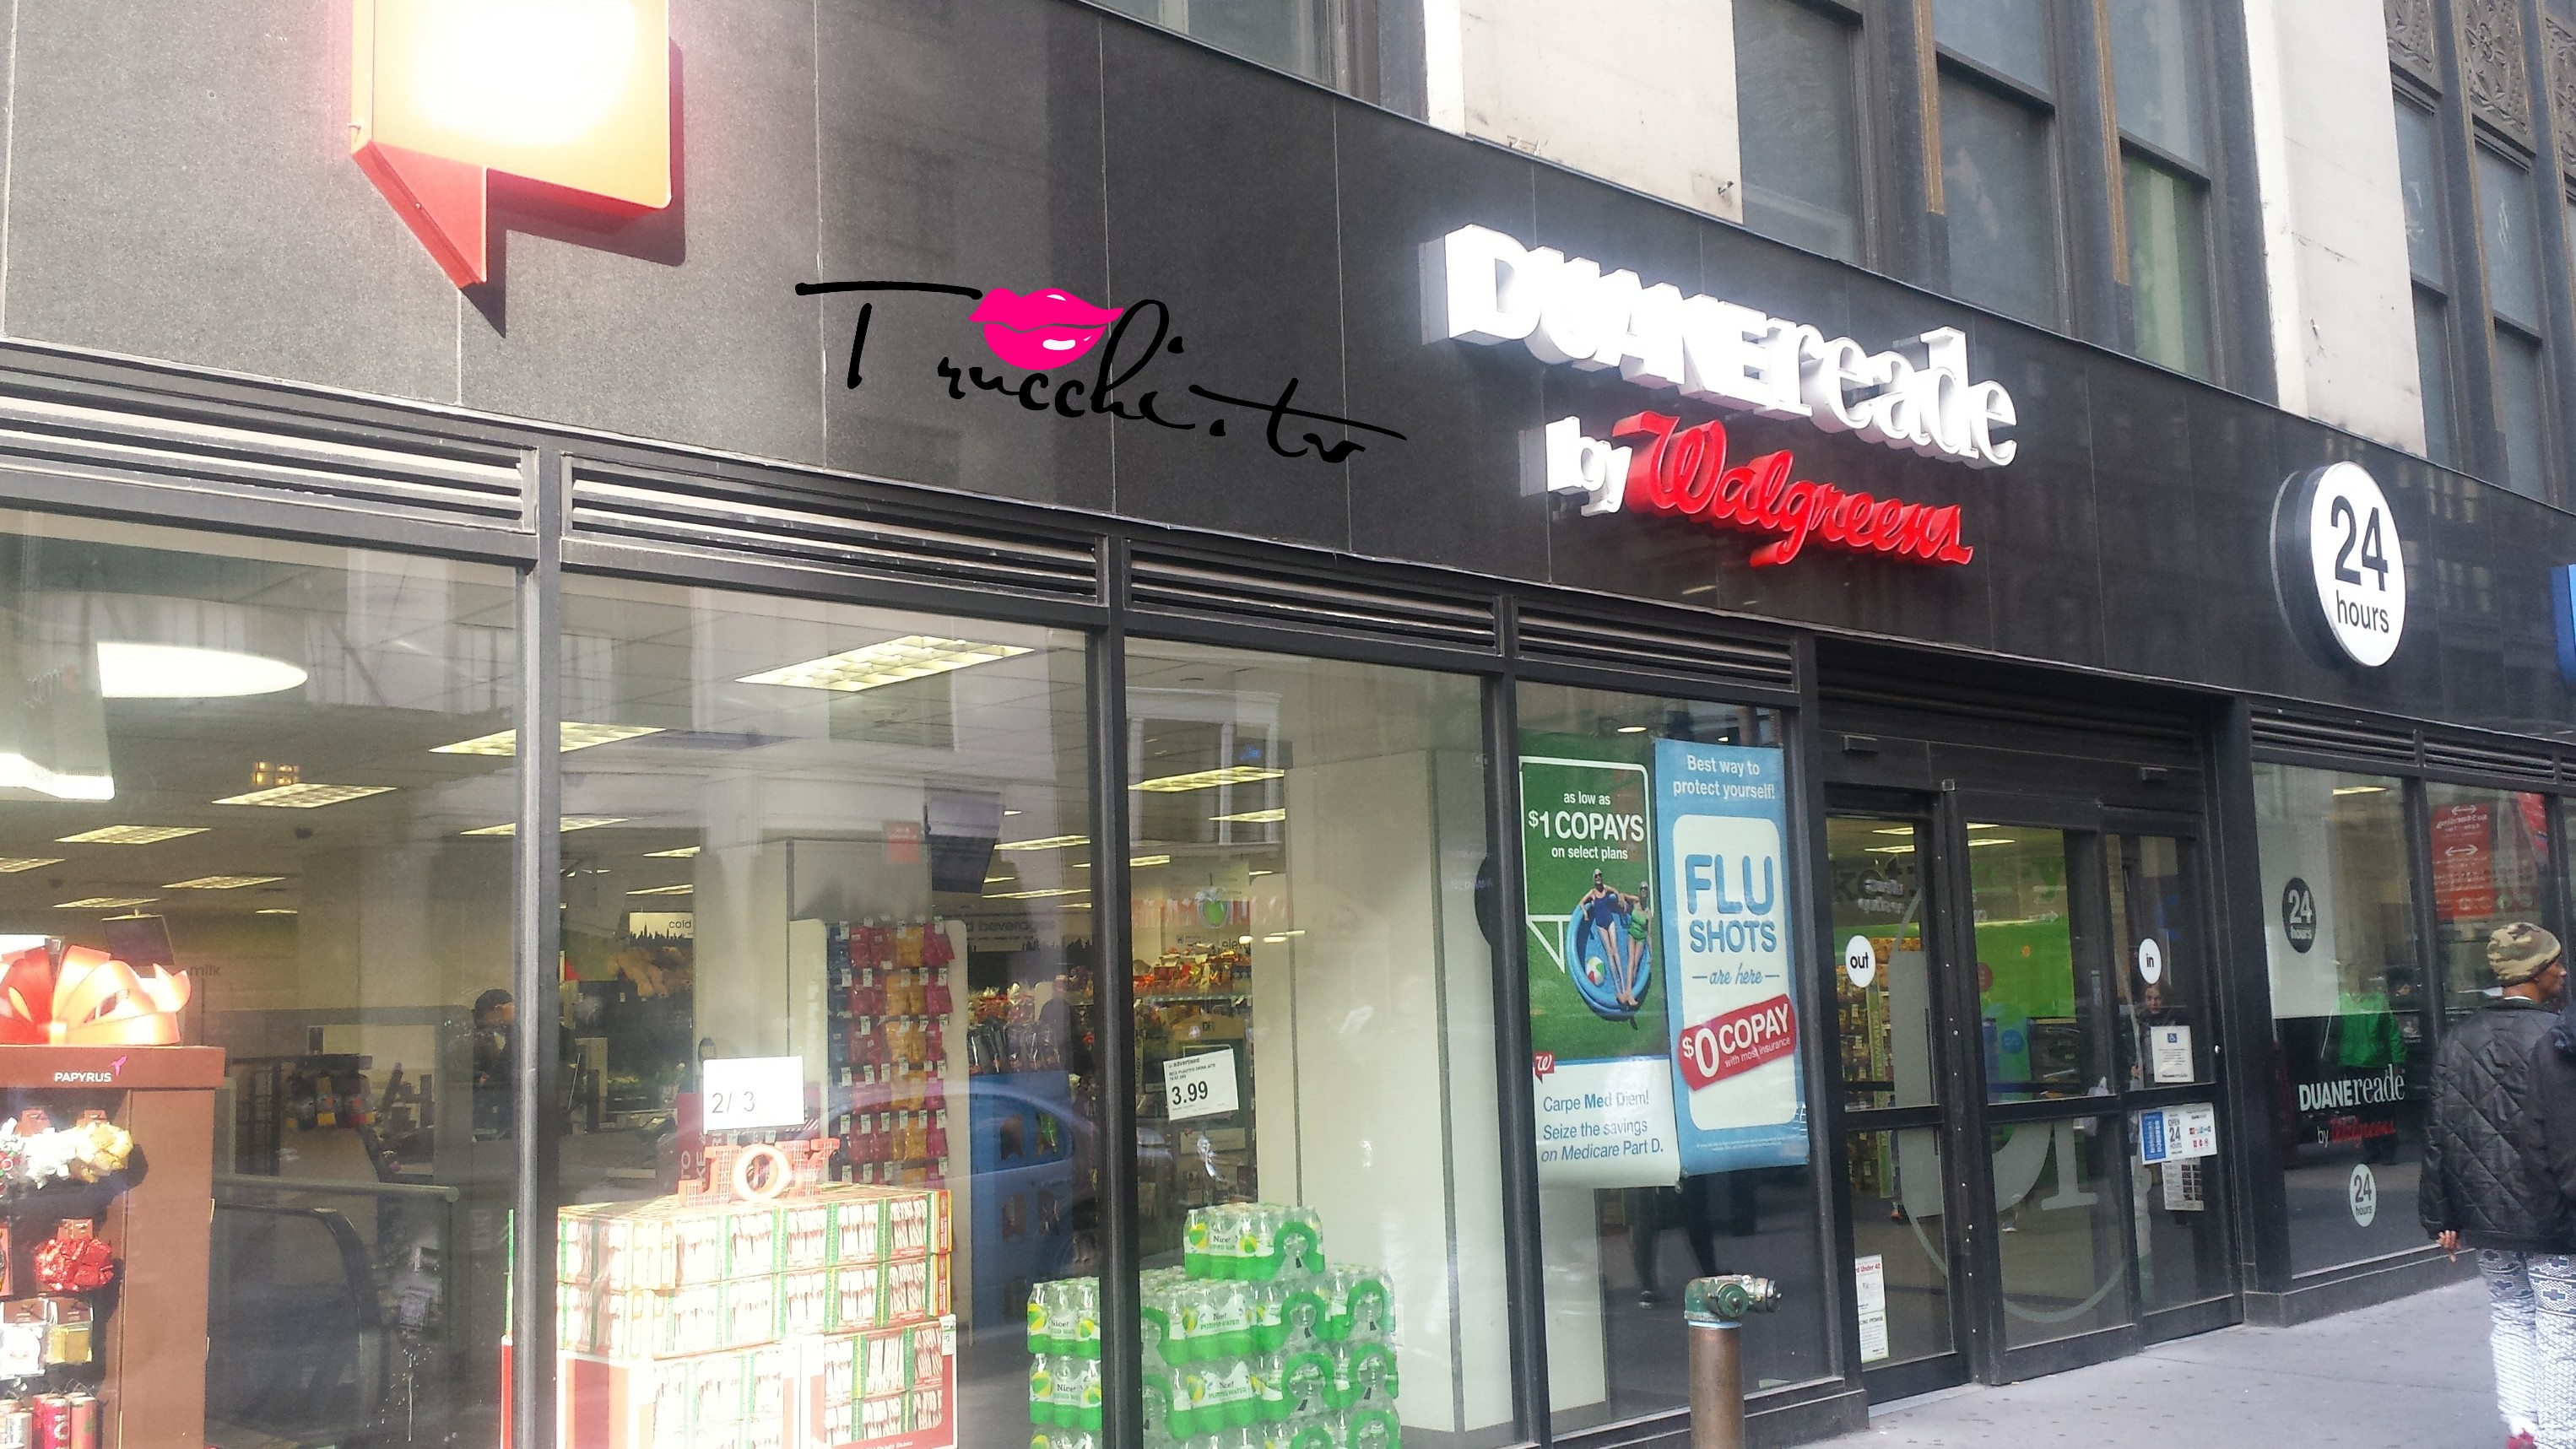 Guida Shopping Makeup New York - DUANEreade by Walgreens